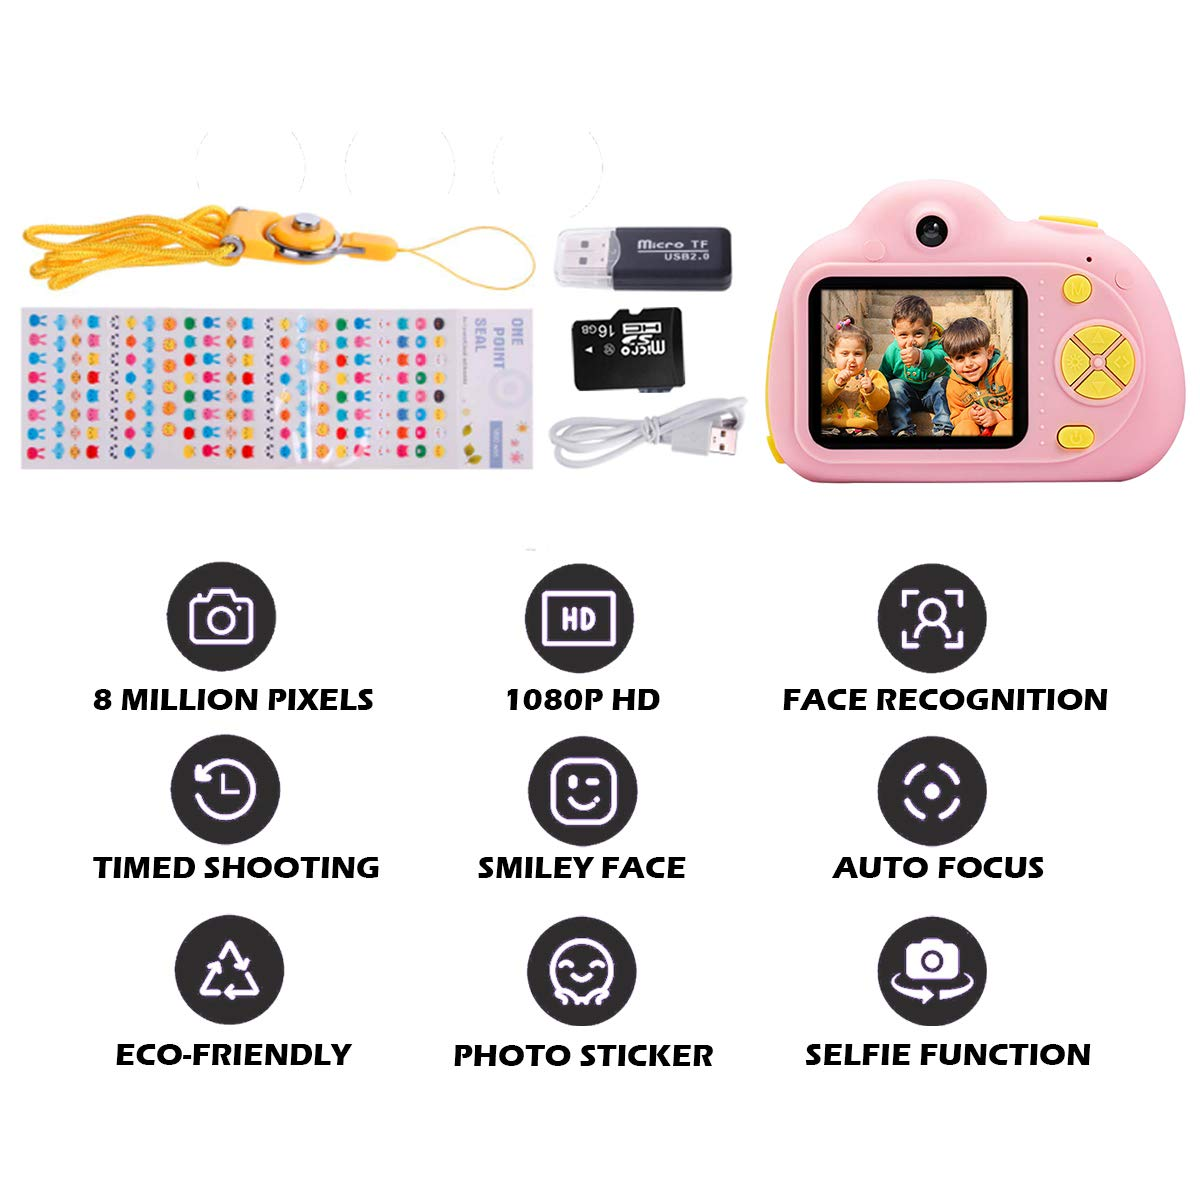 KIDOVE Kids Toys Fun Camera, Waterproof & Shockproof Child Selfie digital game Camcorder, 8MP 1080P dual camera Video Recorder, Creative Birthday Gifts for girls and boys, 16GB TF Card Included (Pink) by KIDOVE (Image #8)